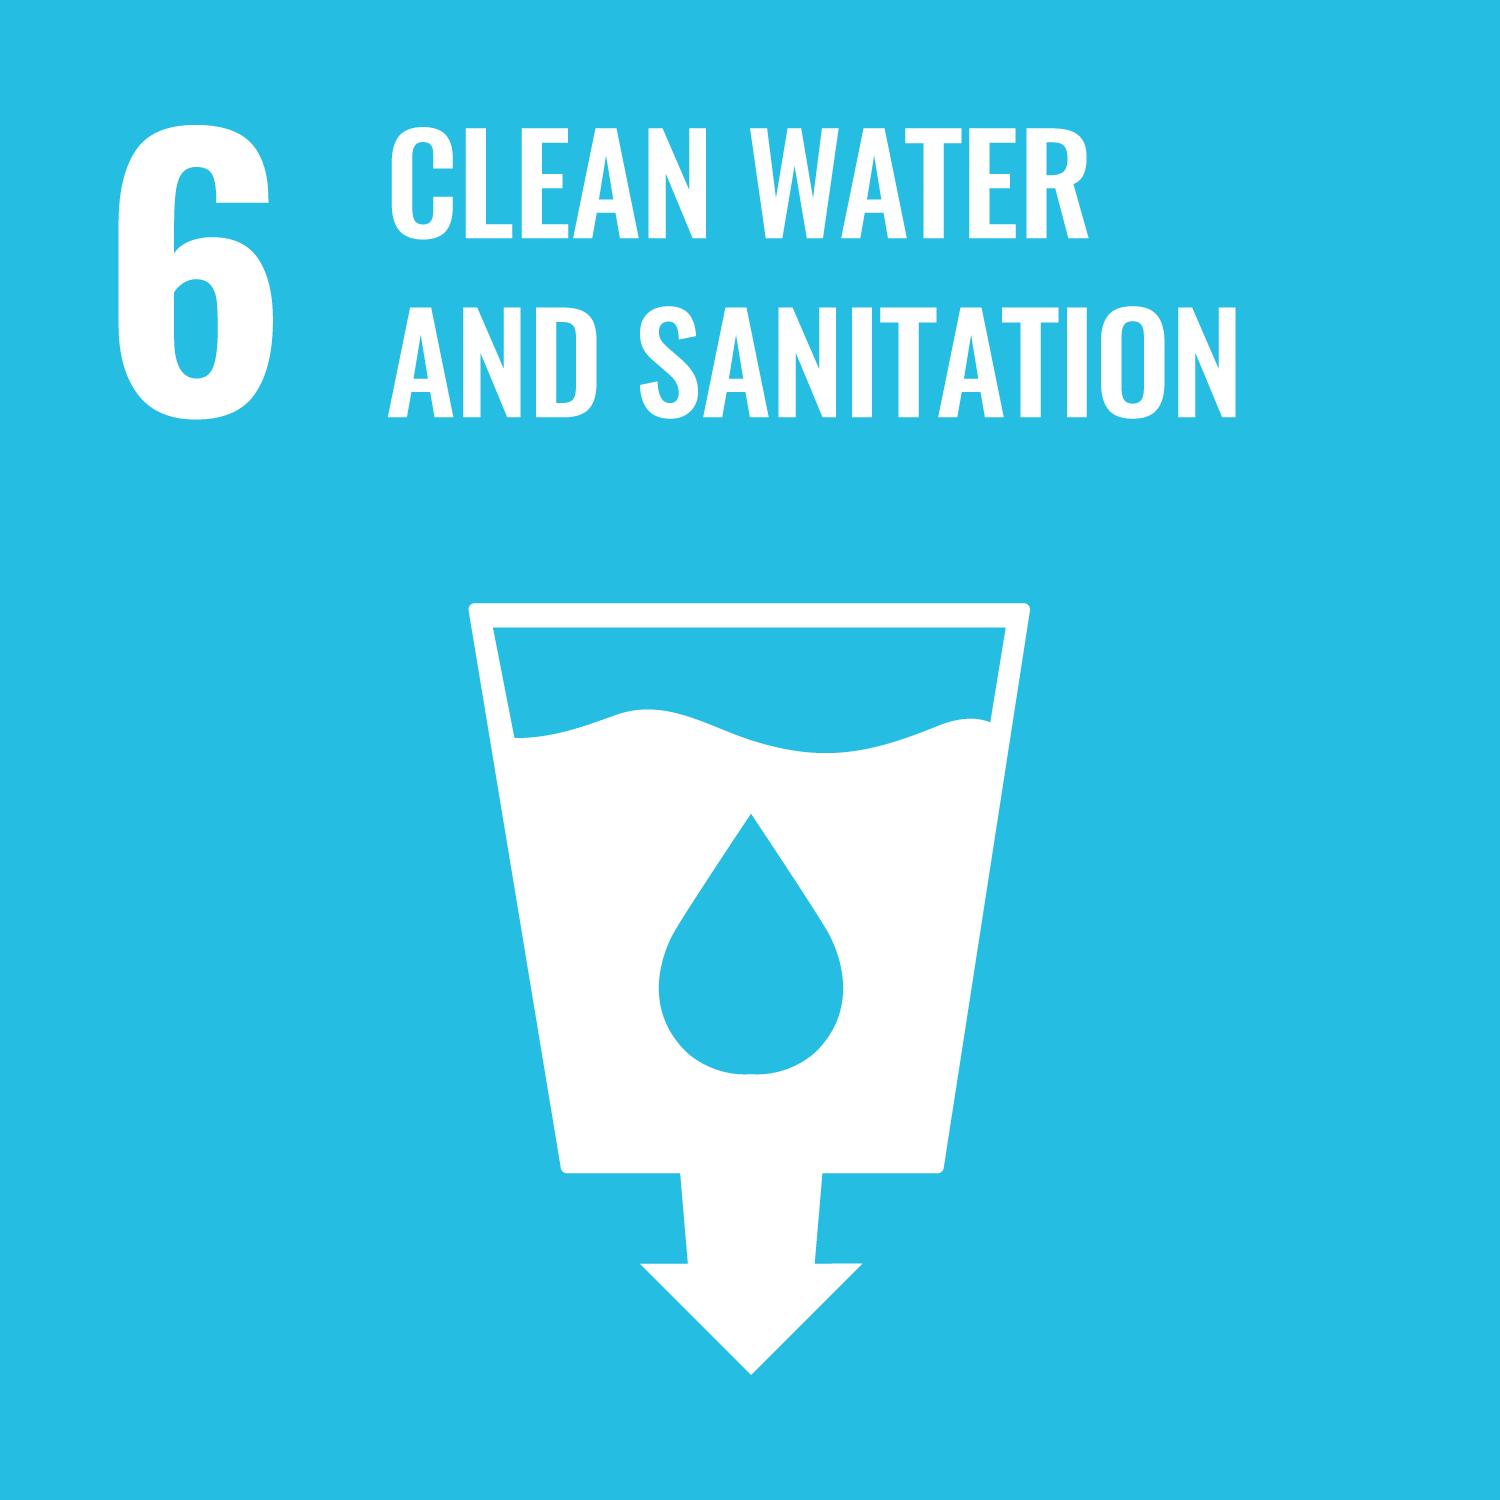 Sustainable Development Goals – Clean Water and Sanitation